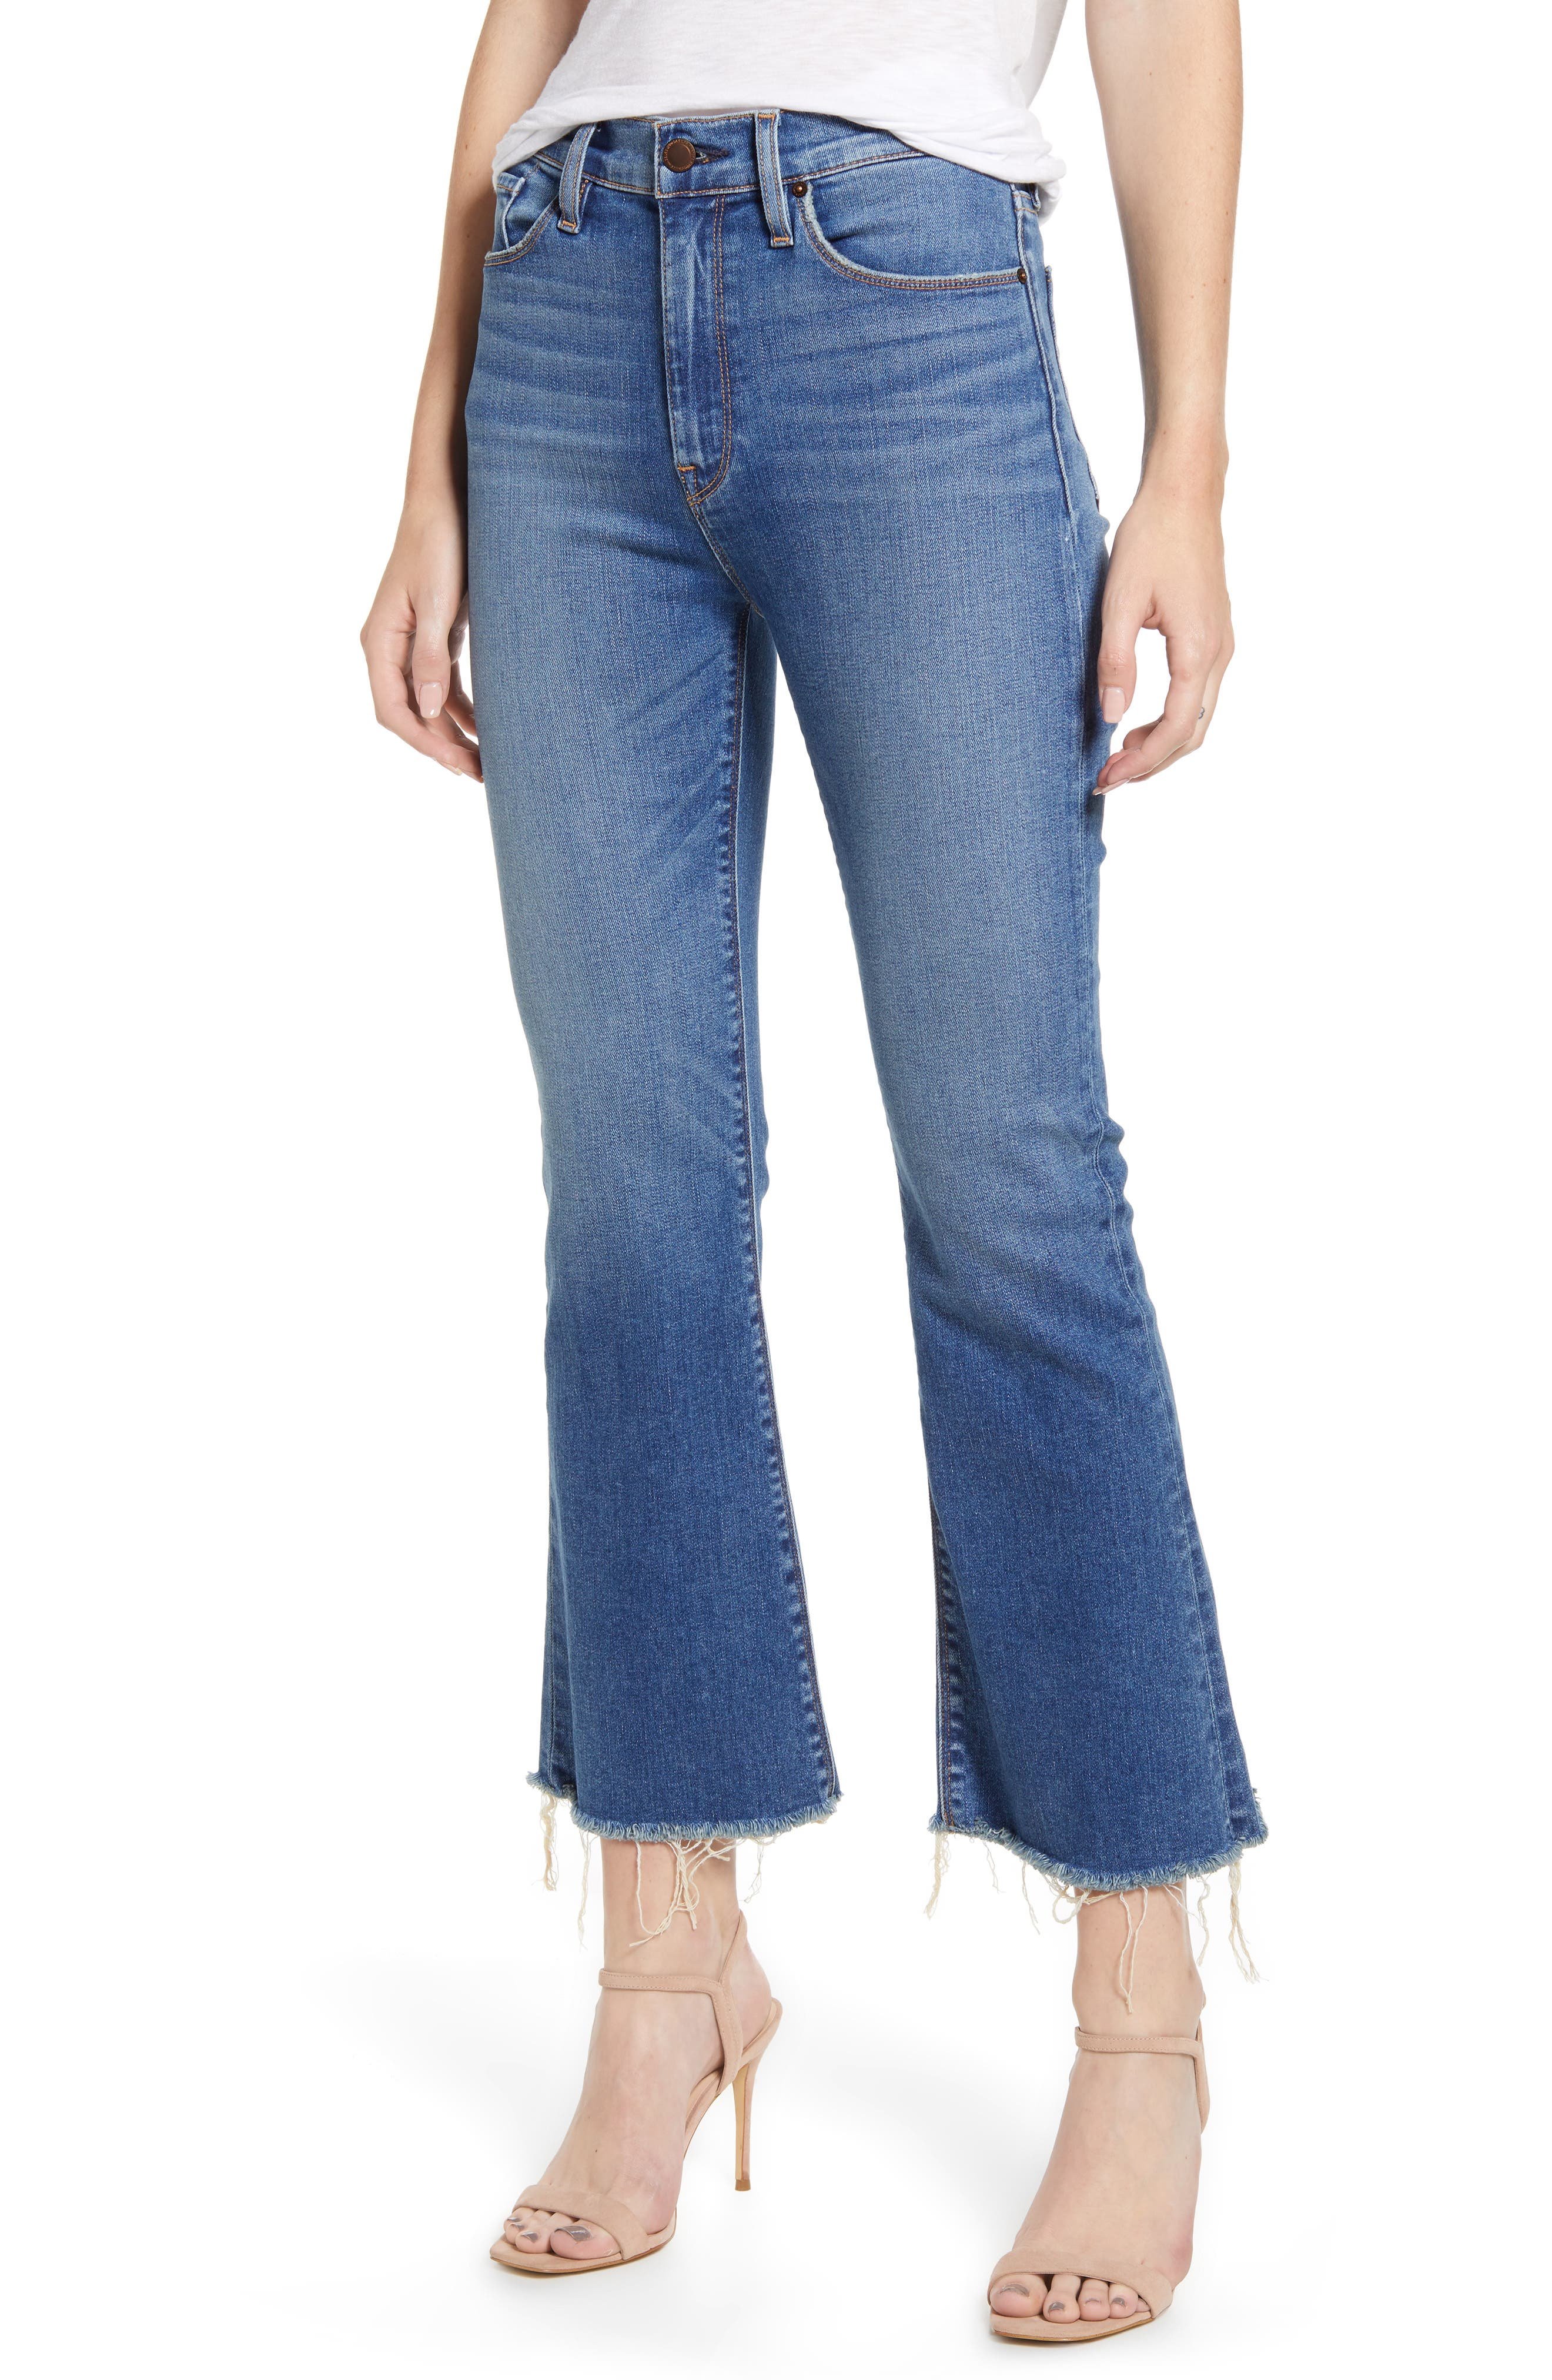 Give your style a \\\'70s kick with these soft and sanded jeans that end in frayed, cropped flares. Style Name: Hudson Jeans Holly Barefoot Crop Flare Jeans (Before Dawn). Style Number: 5870895. Available in stores.